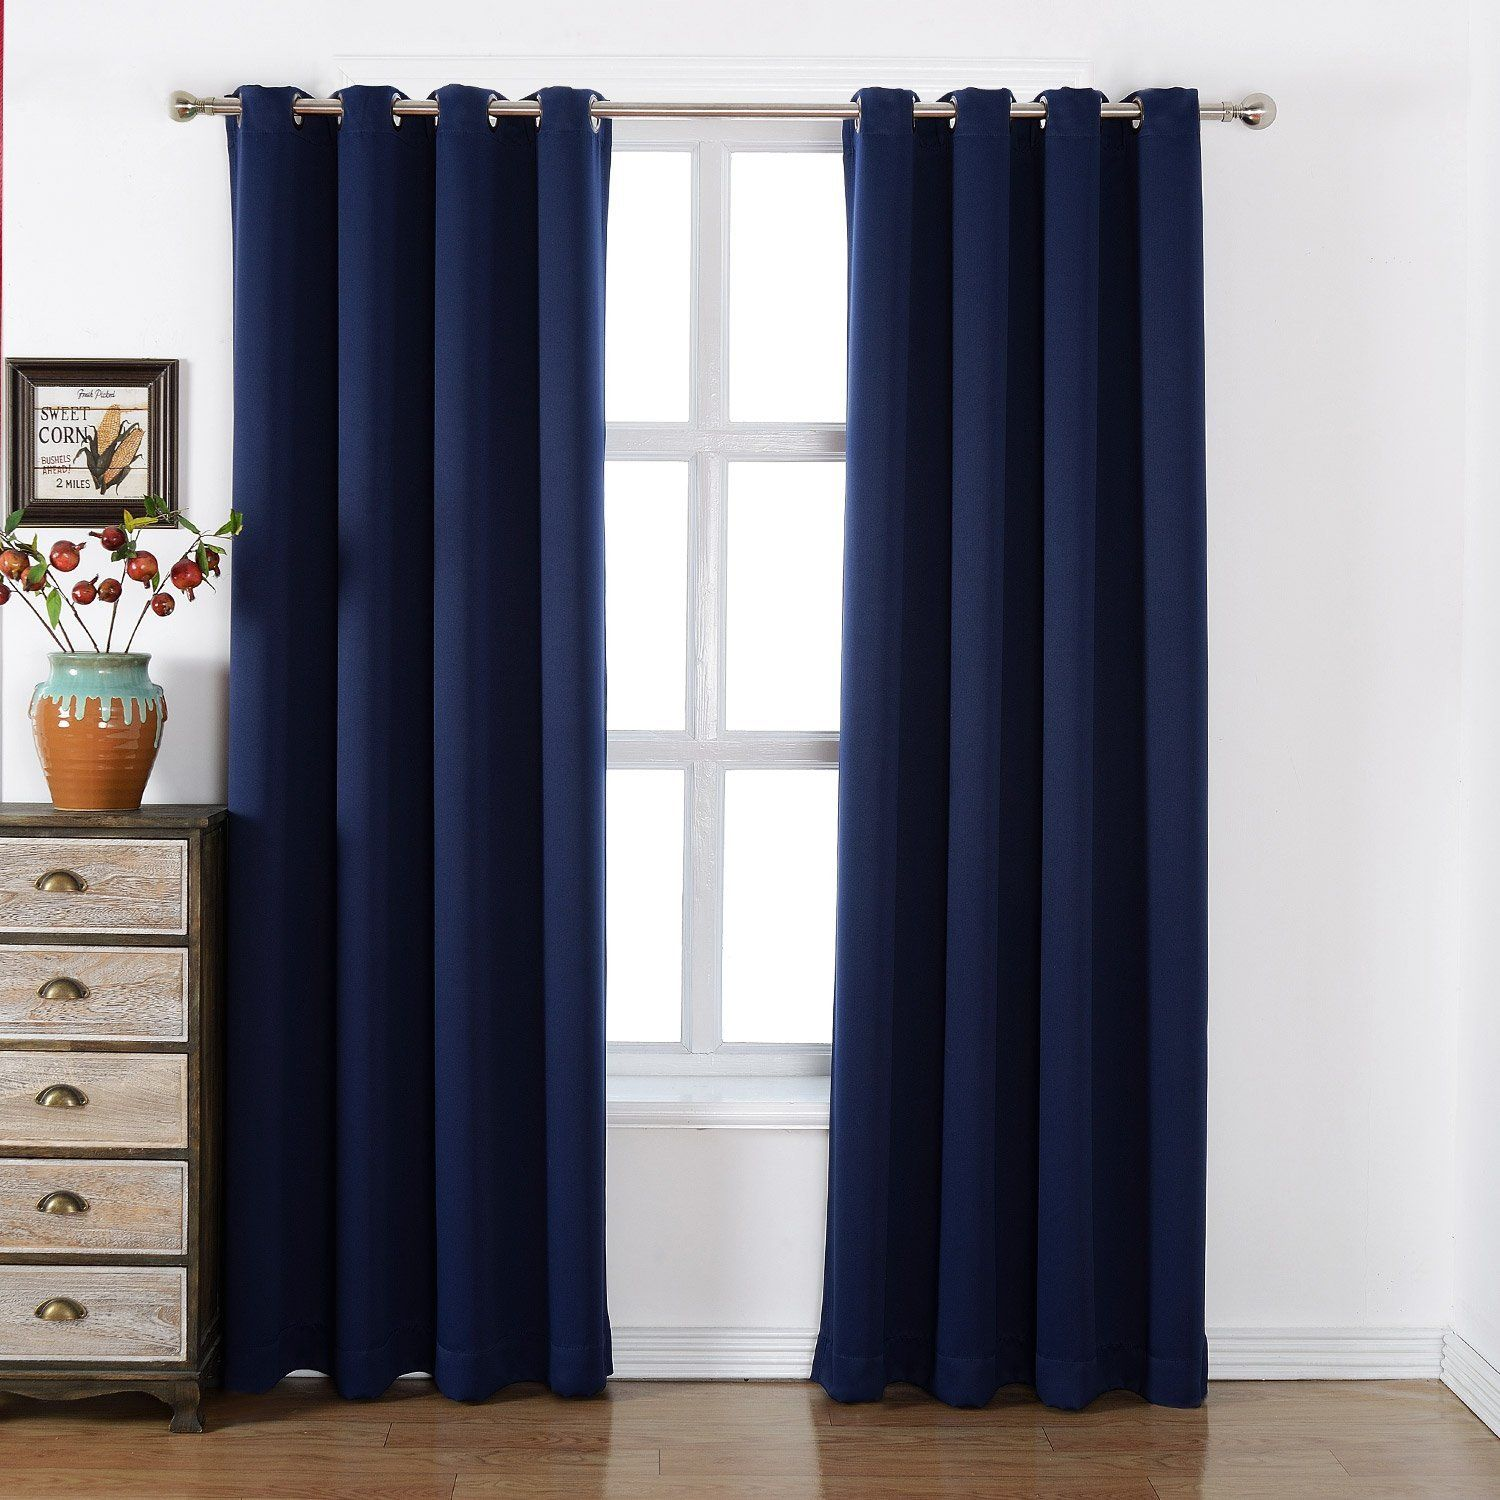 pair amazon gt blackout curtain com pin home best x insulated grommet top window thermal l curtains fashion treatment w beige